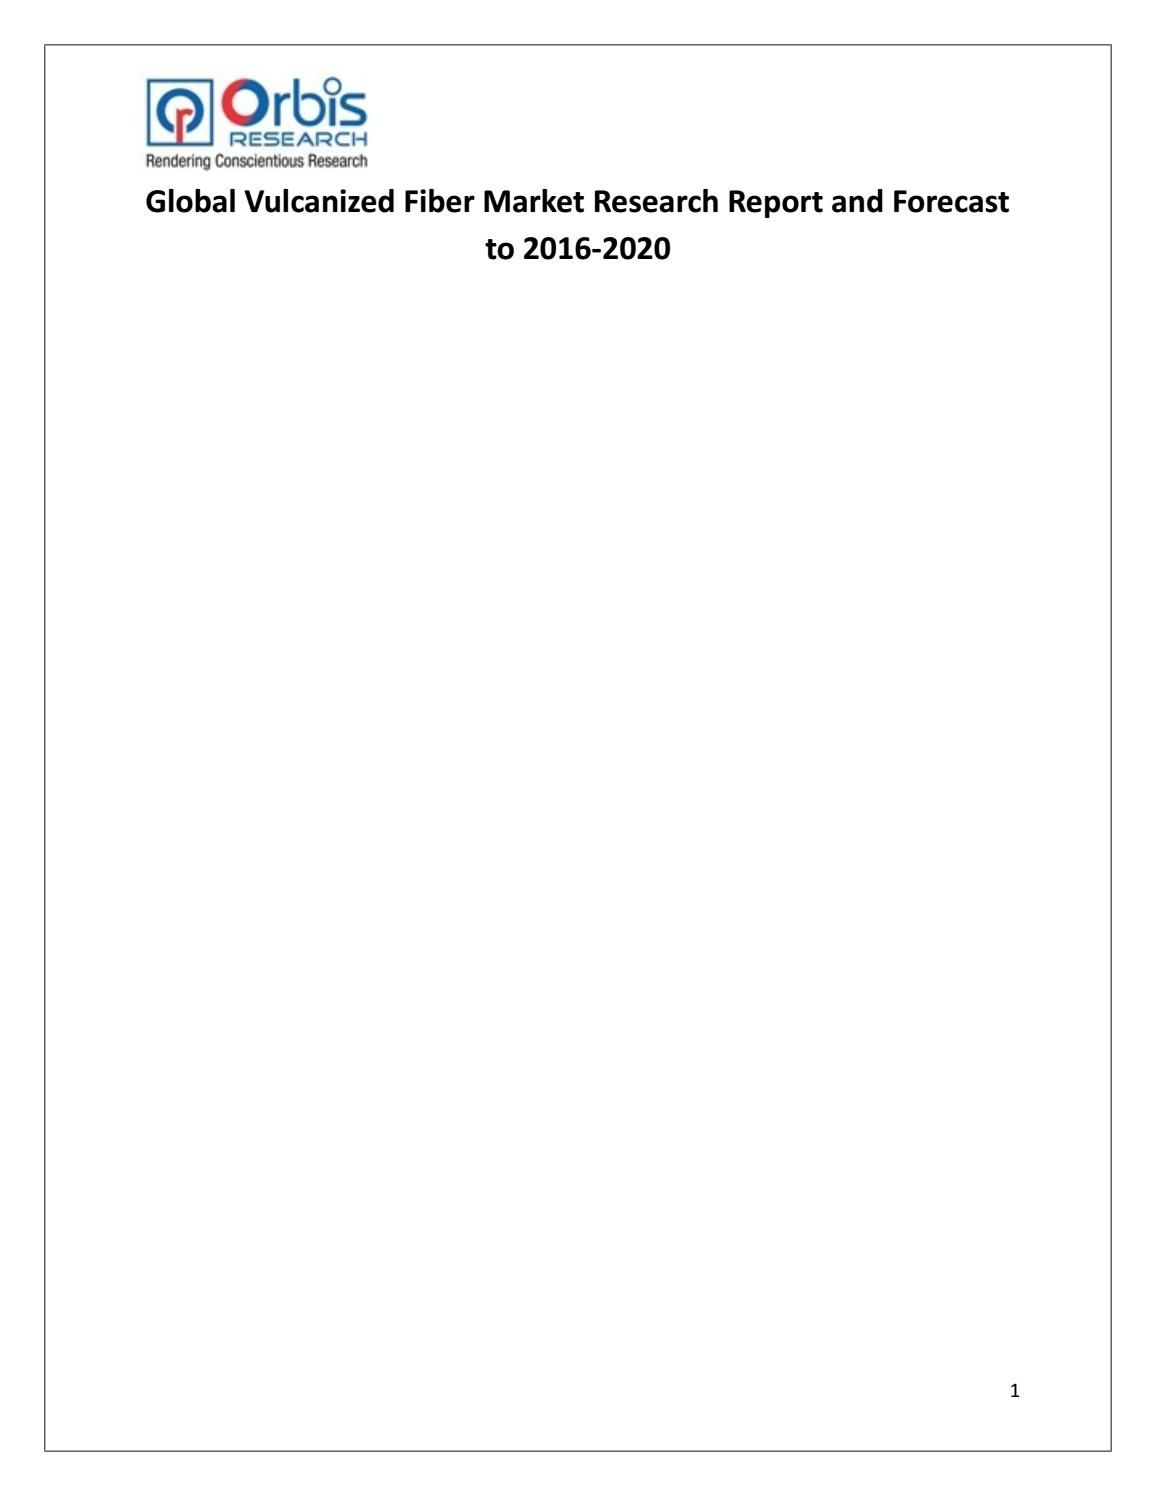 2016 Global Vulcanized Fiber Industry Report is a professional and in-depth research report on the world's major regional market conditions of the Vulcanized Fiber industry, focusing on the main regions (North America, Europe and Asia) and the main countries (United States, Germany, Japan and China).  Browse the complete report @ http://www.orbisresearch.com/reports/index/global-vulcanized-fiber-market-research-report-and-forecast-to-2016-2020 .